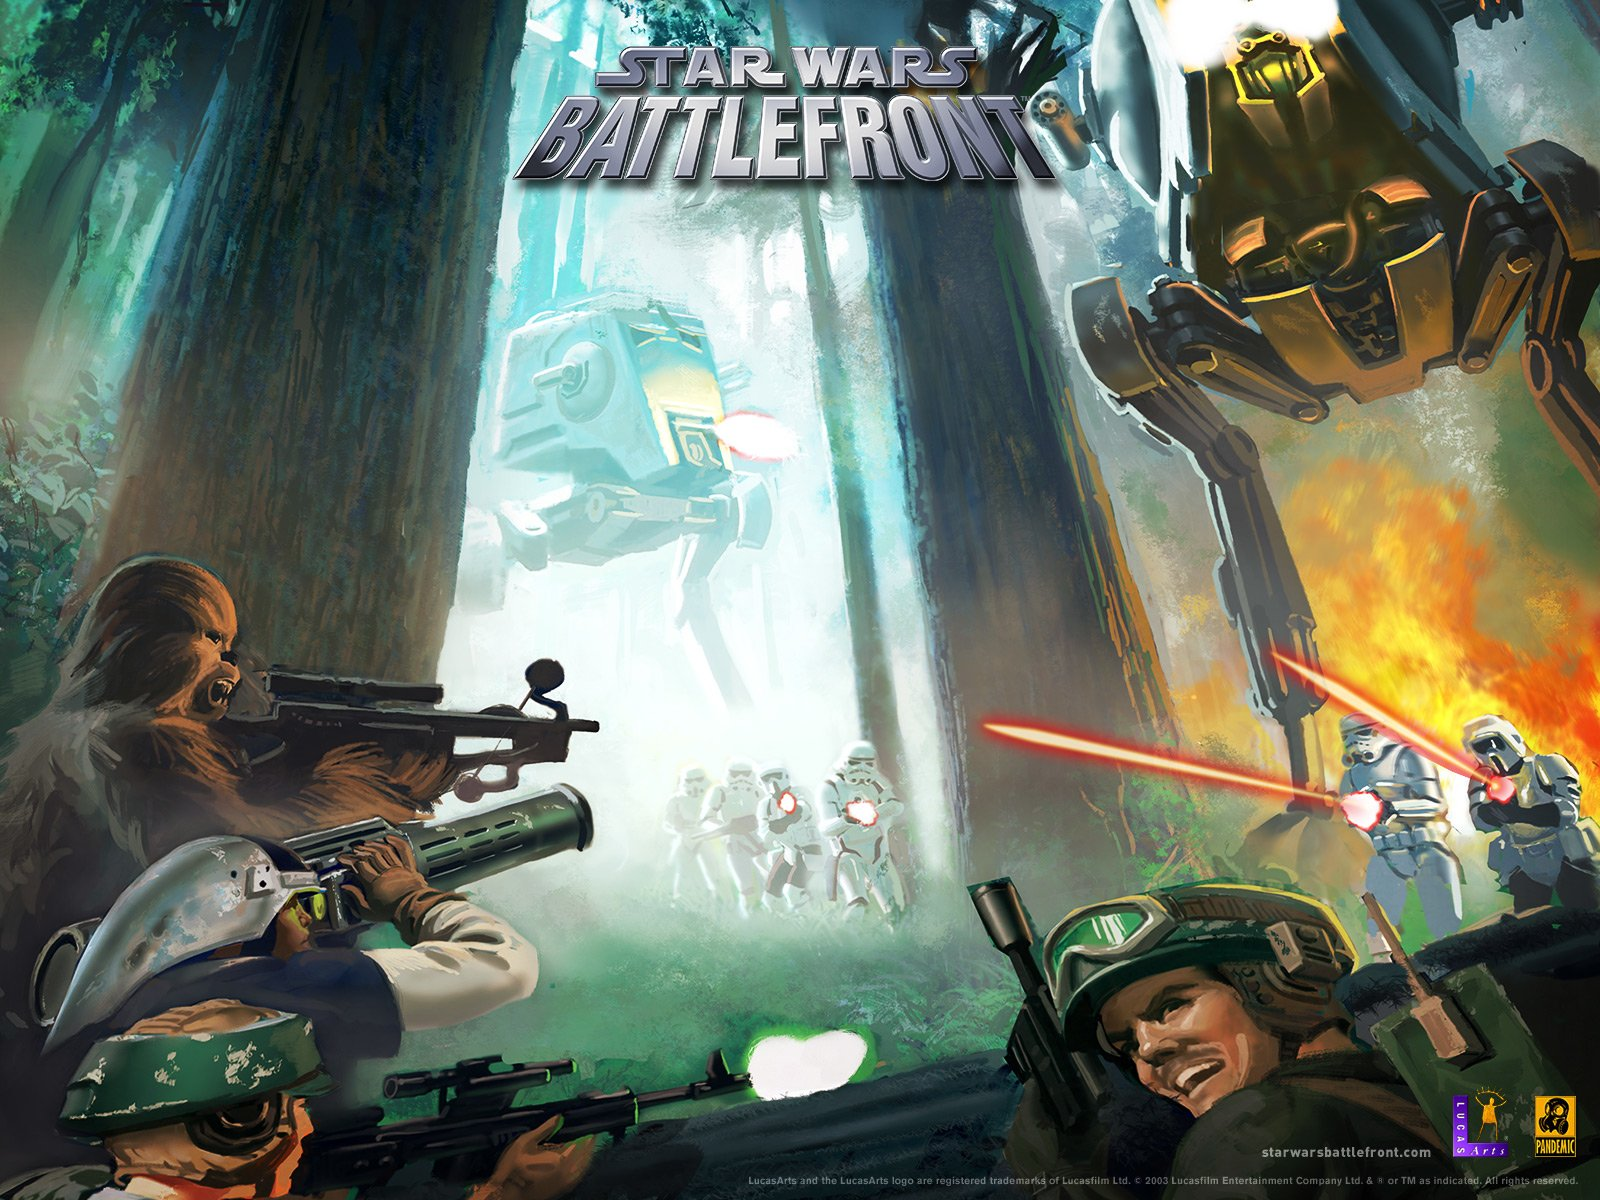 Hd Wallpapers For Mobile Free Download 480x800 Star Wars Battlefront Wallpaper And Background Image